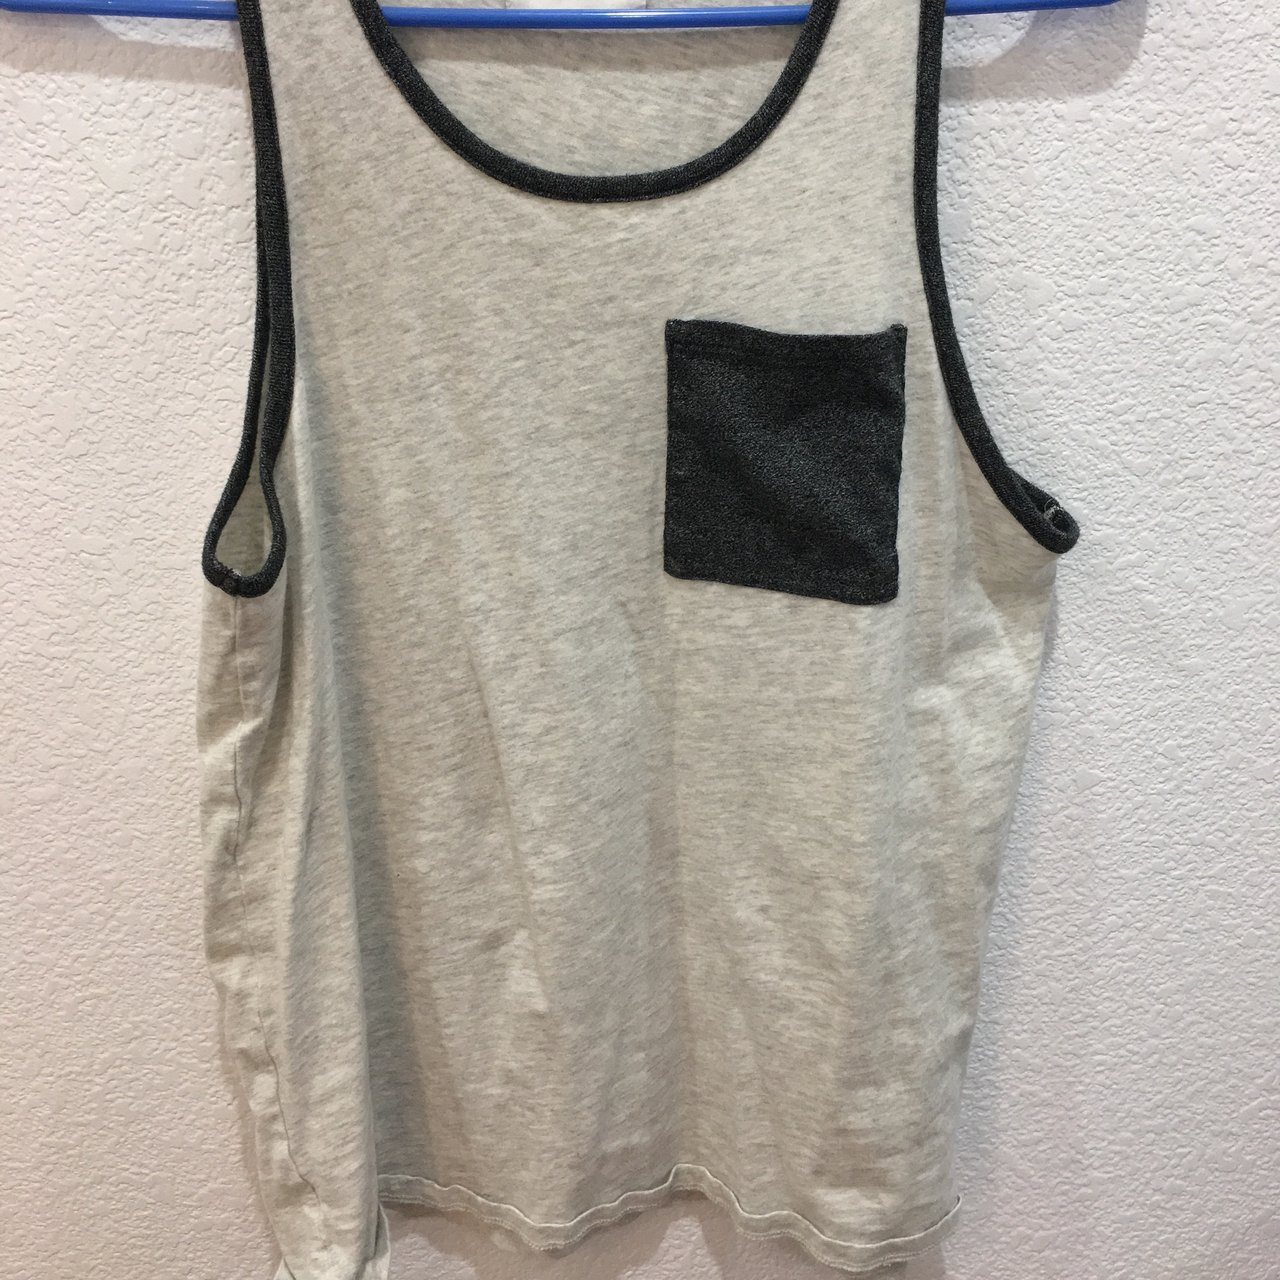 Pacsun Men s Tank top Size  S Very comfy ! Perfect for at - Depop f4c4ded0822d